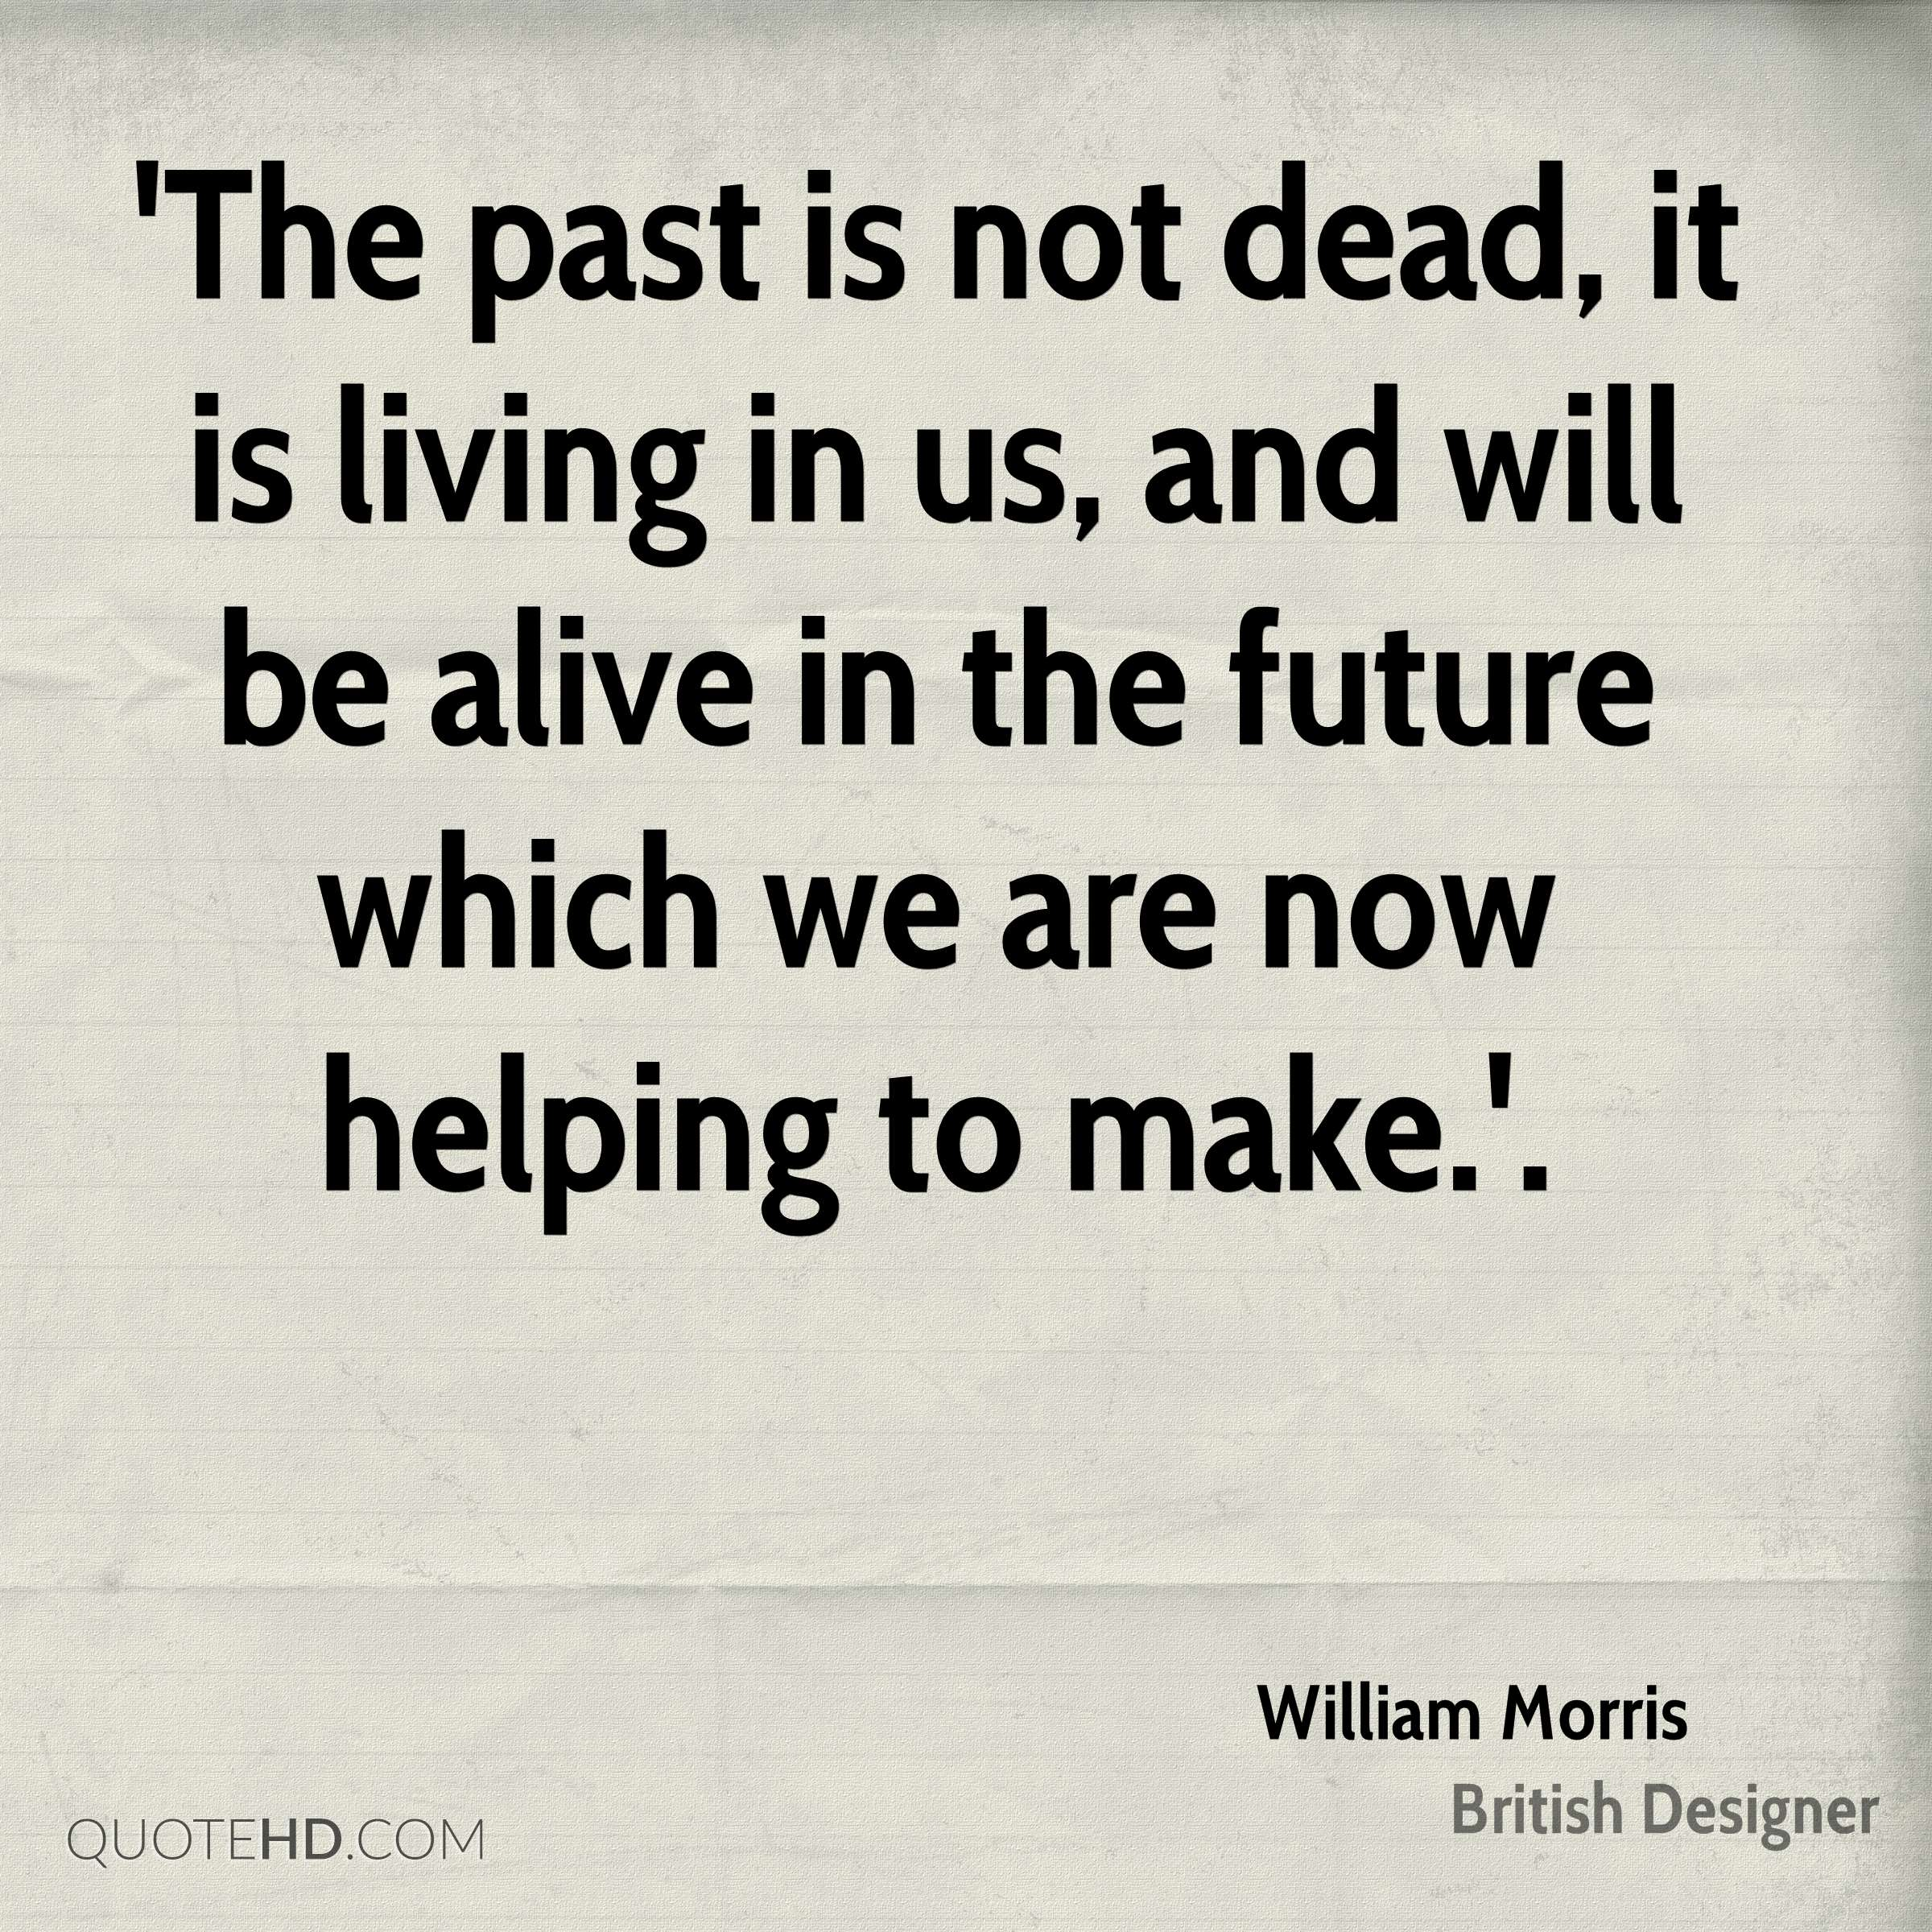 'The past is not dead, it is living in us, and will be alive in the future which we are now helping to make.'.